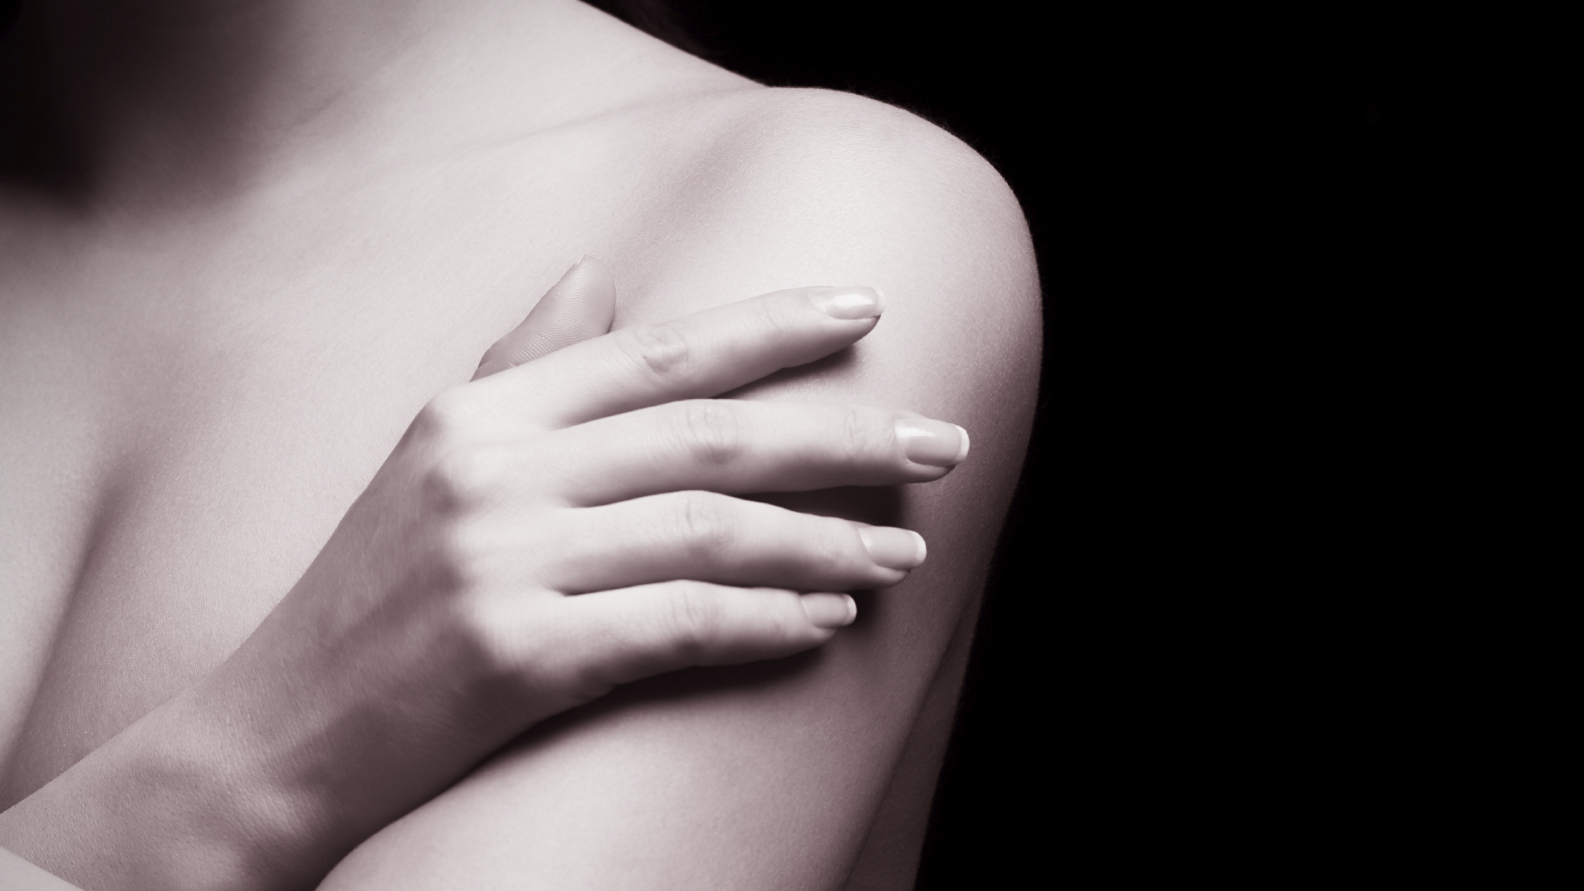 Double Mastectomy Doesnt Improve Breast Cancer Survival Rate, According To New Research Double Mastectomy Doesnt Improve Breast Cancer Survival Rate, According To New Research new images